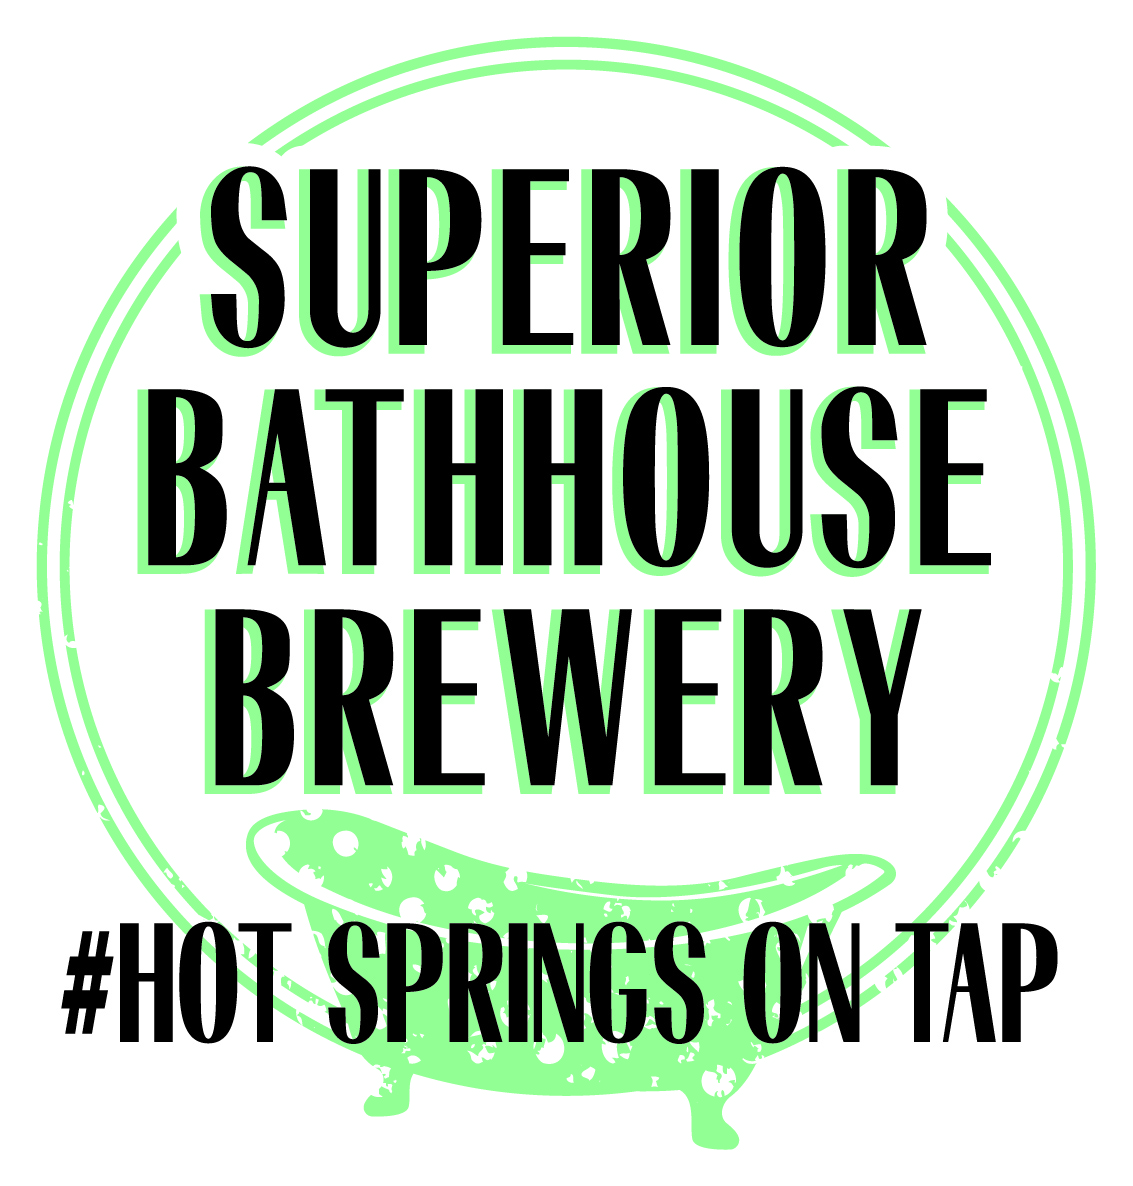 Superior Bathhouse Brewery